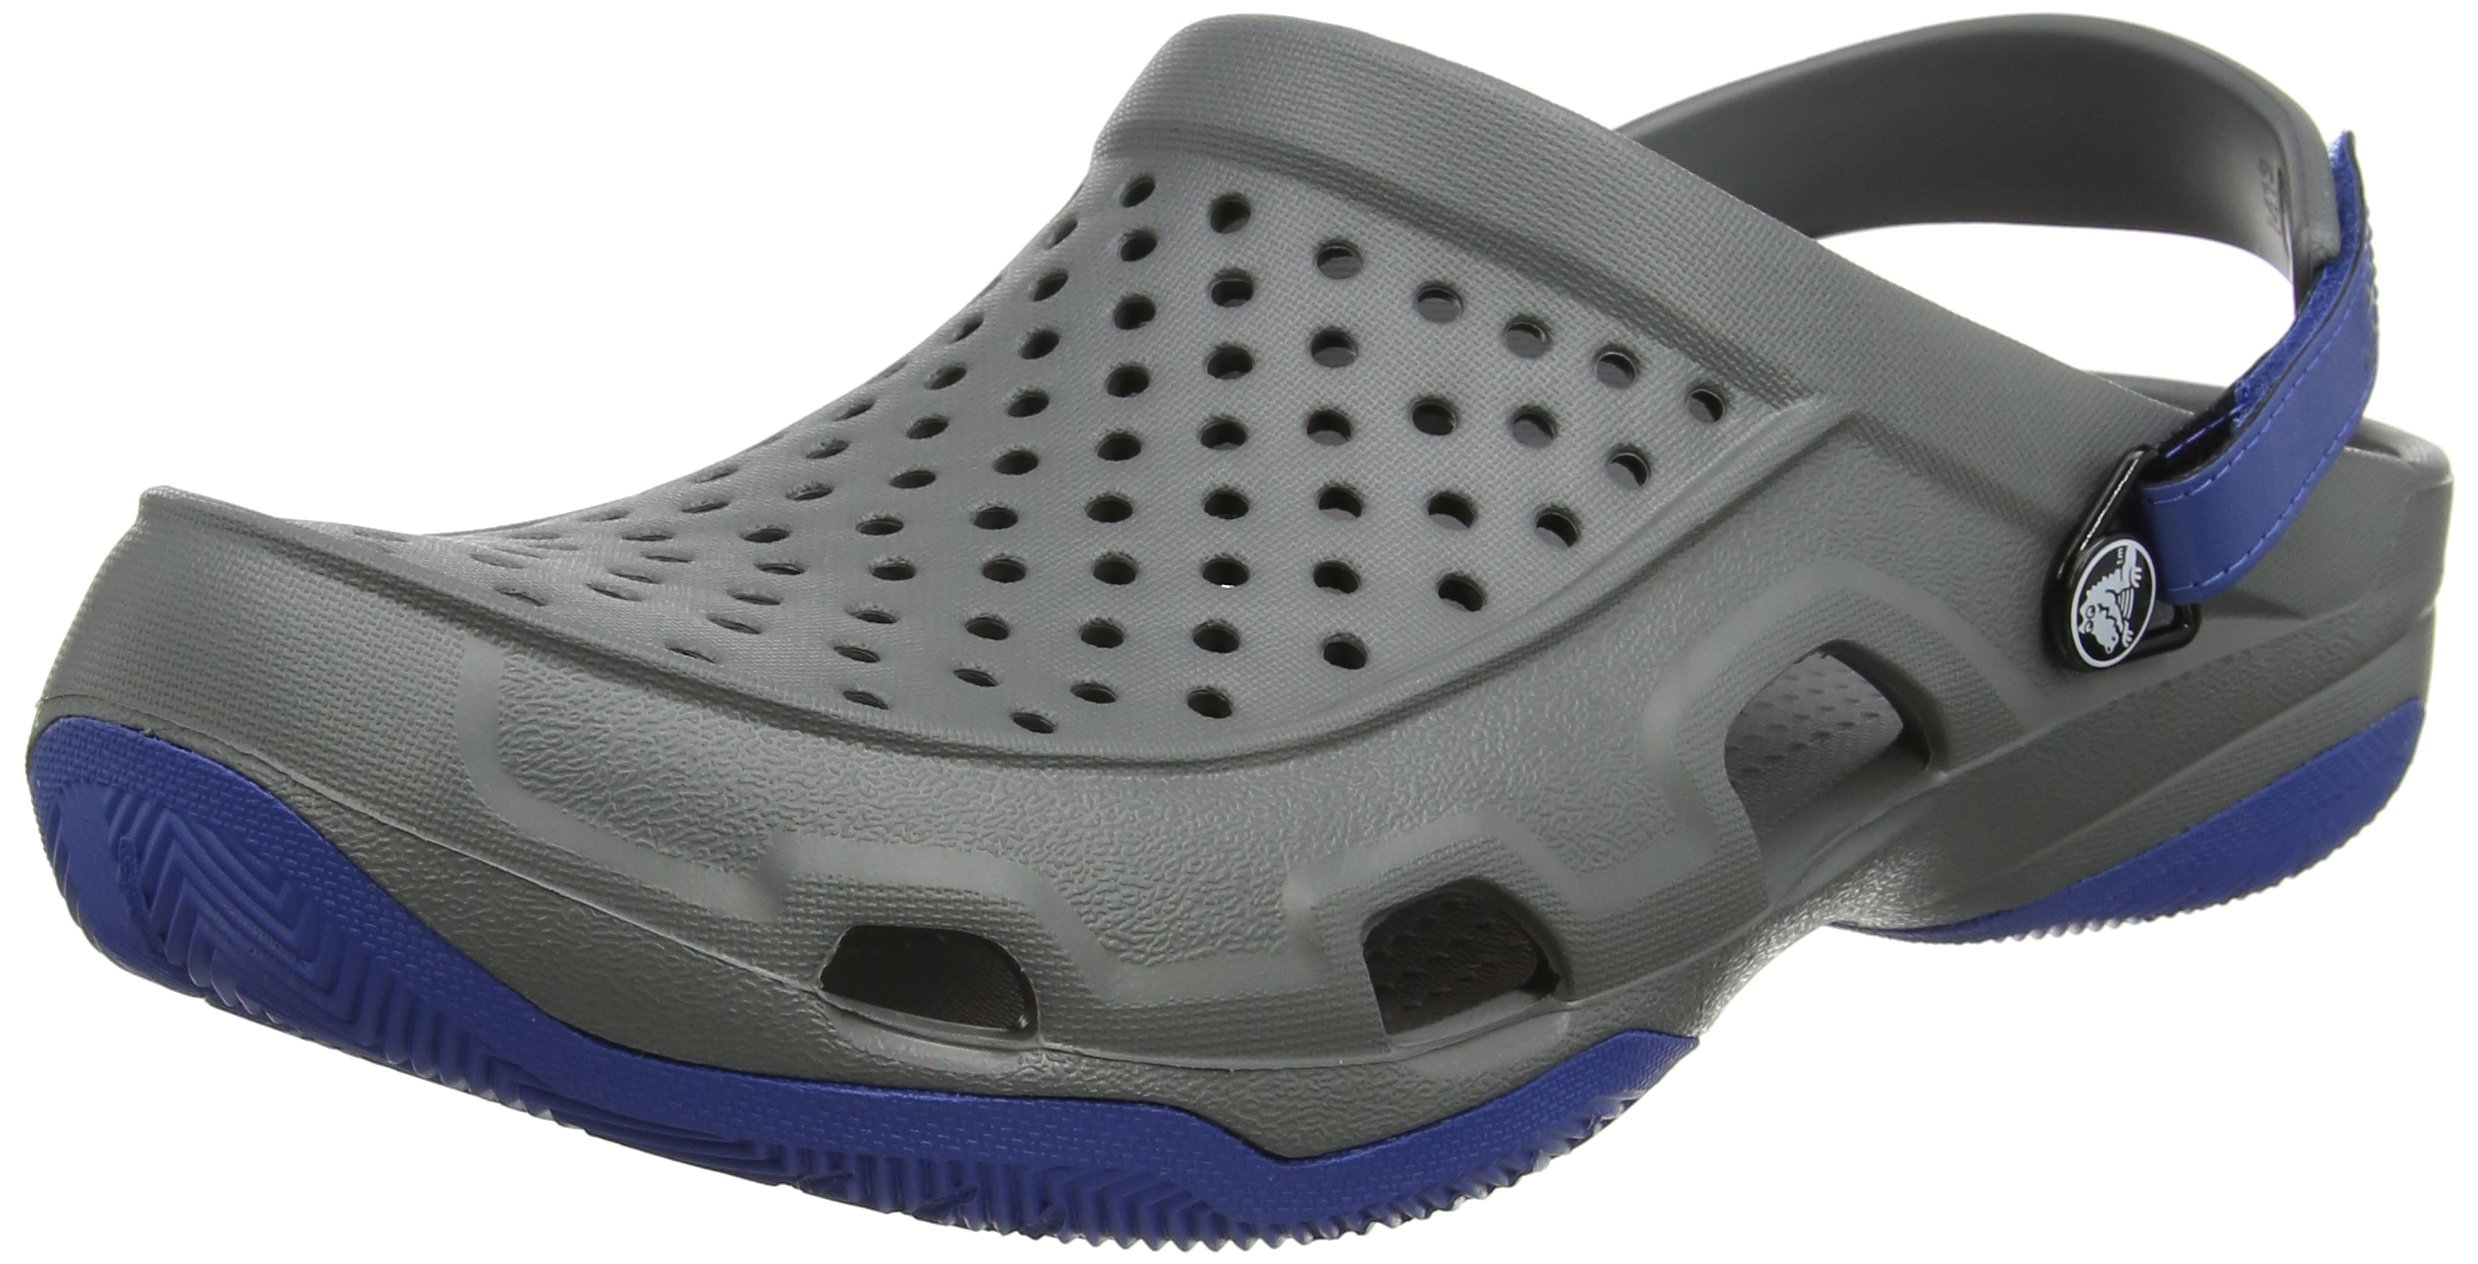 Crocs Men's Swiftwater Deck Clog M Mule, Slate Grey, 10 M US